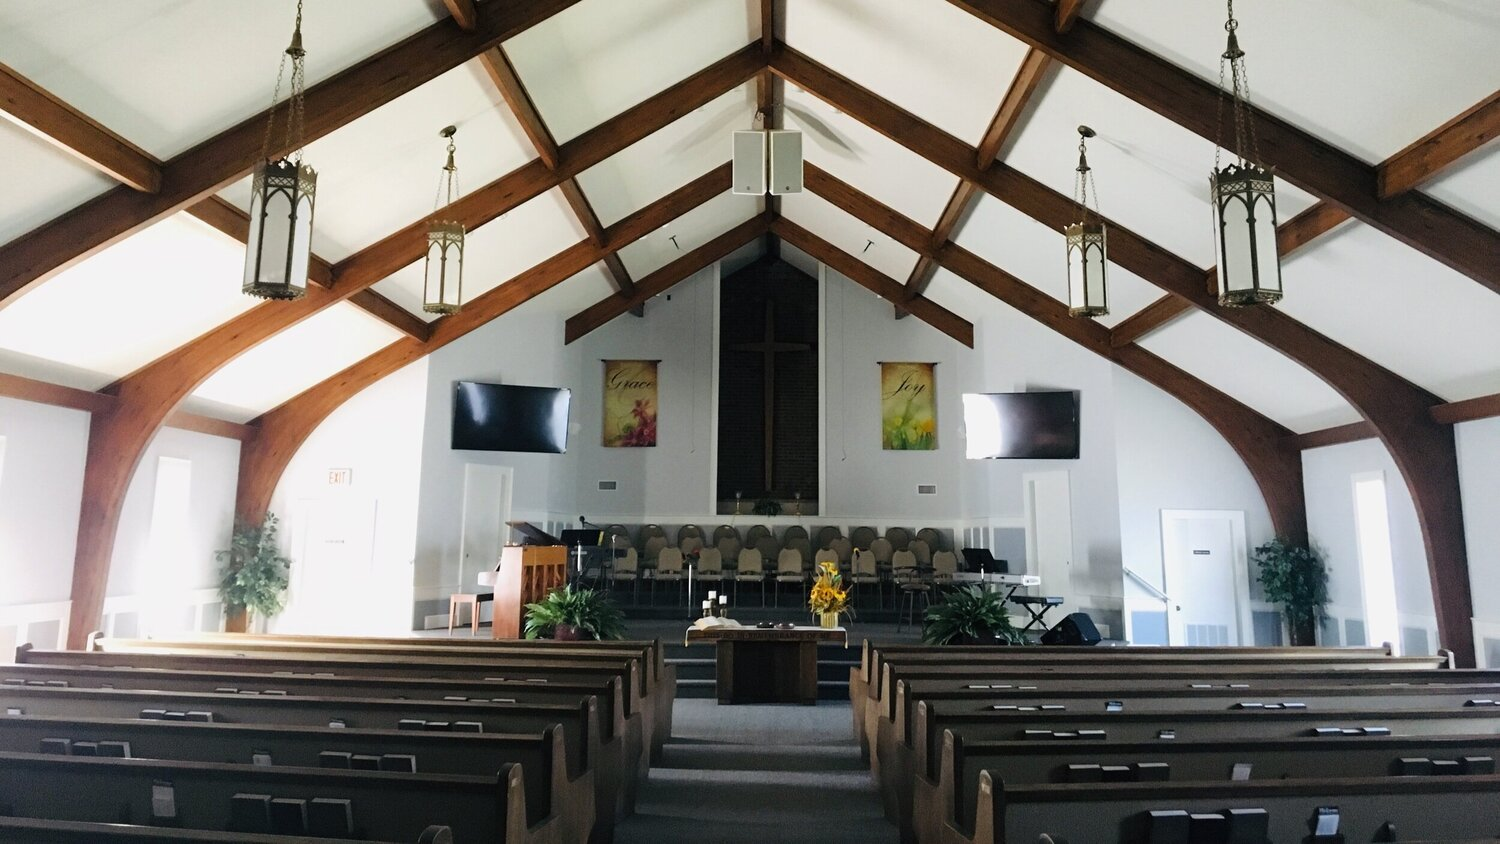 Our Sanctuary - Traditional Worship